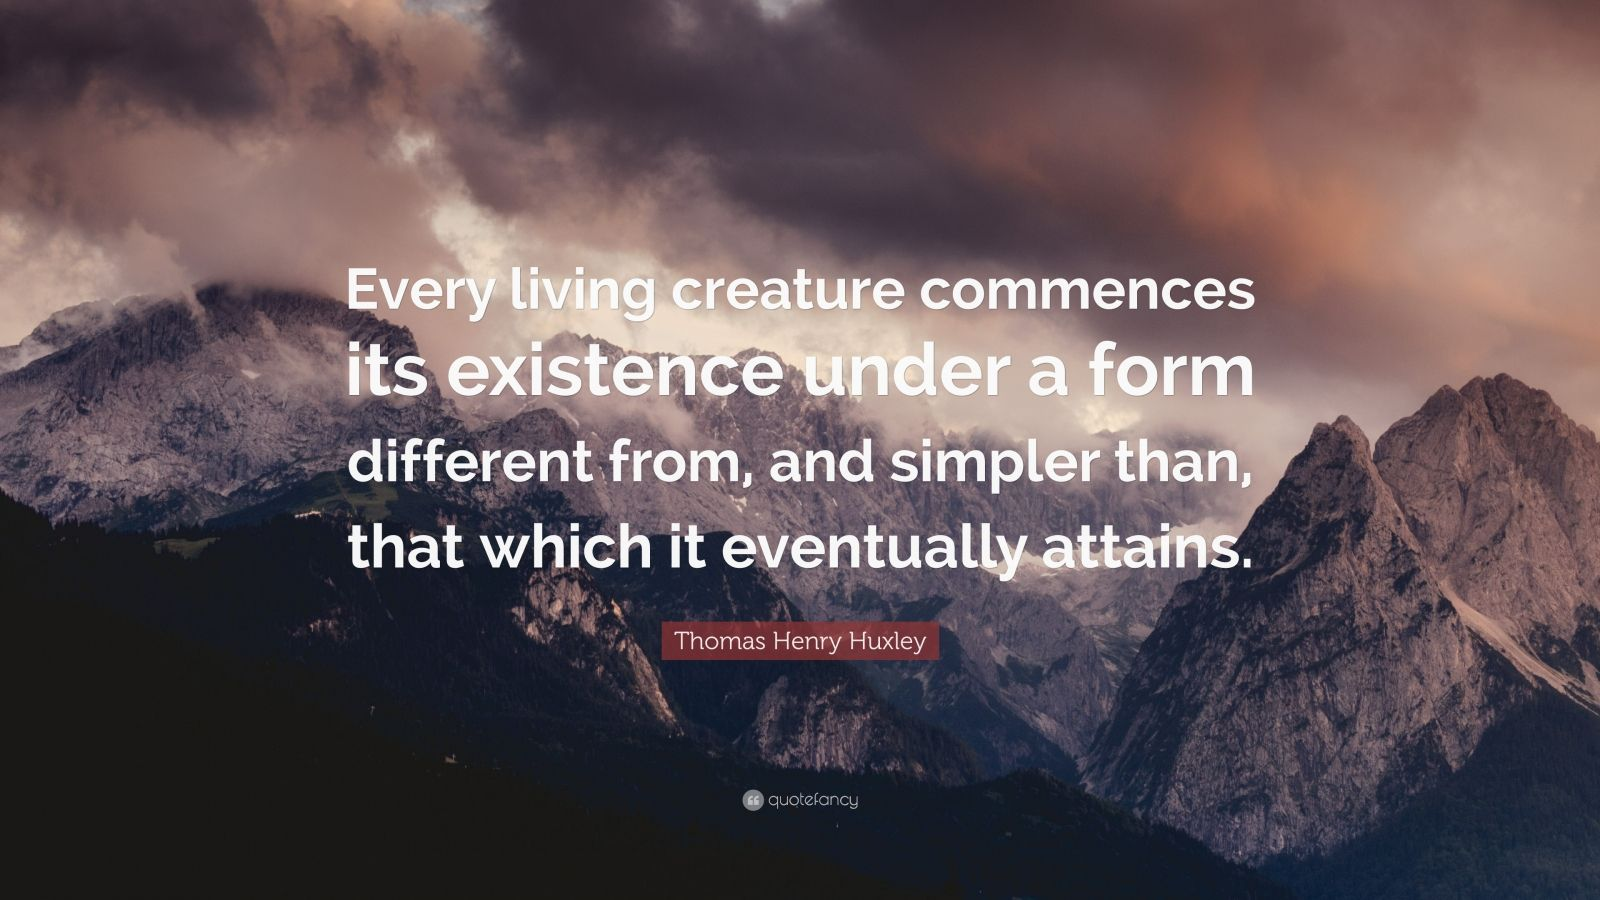 """Thomas Henry Huxley Quote: """"Every living creature commences its existence under a form different from, and simpler than, that which it eventually attains."""""""